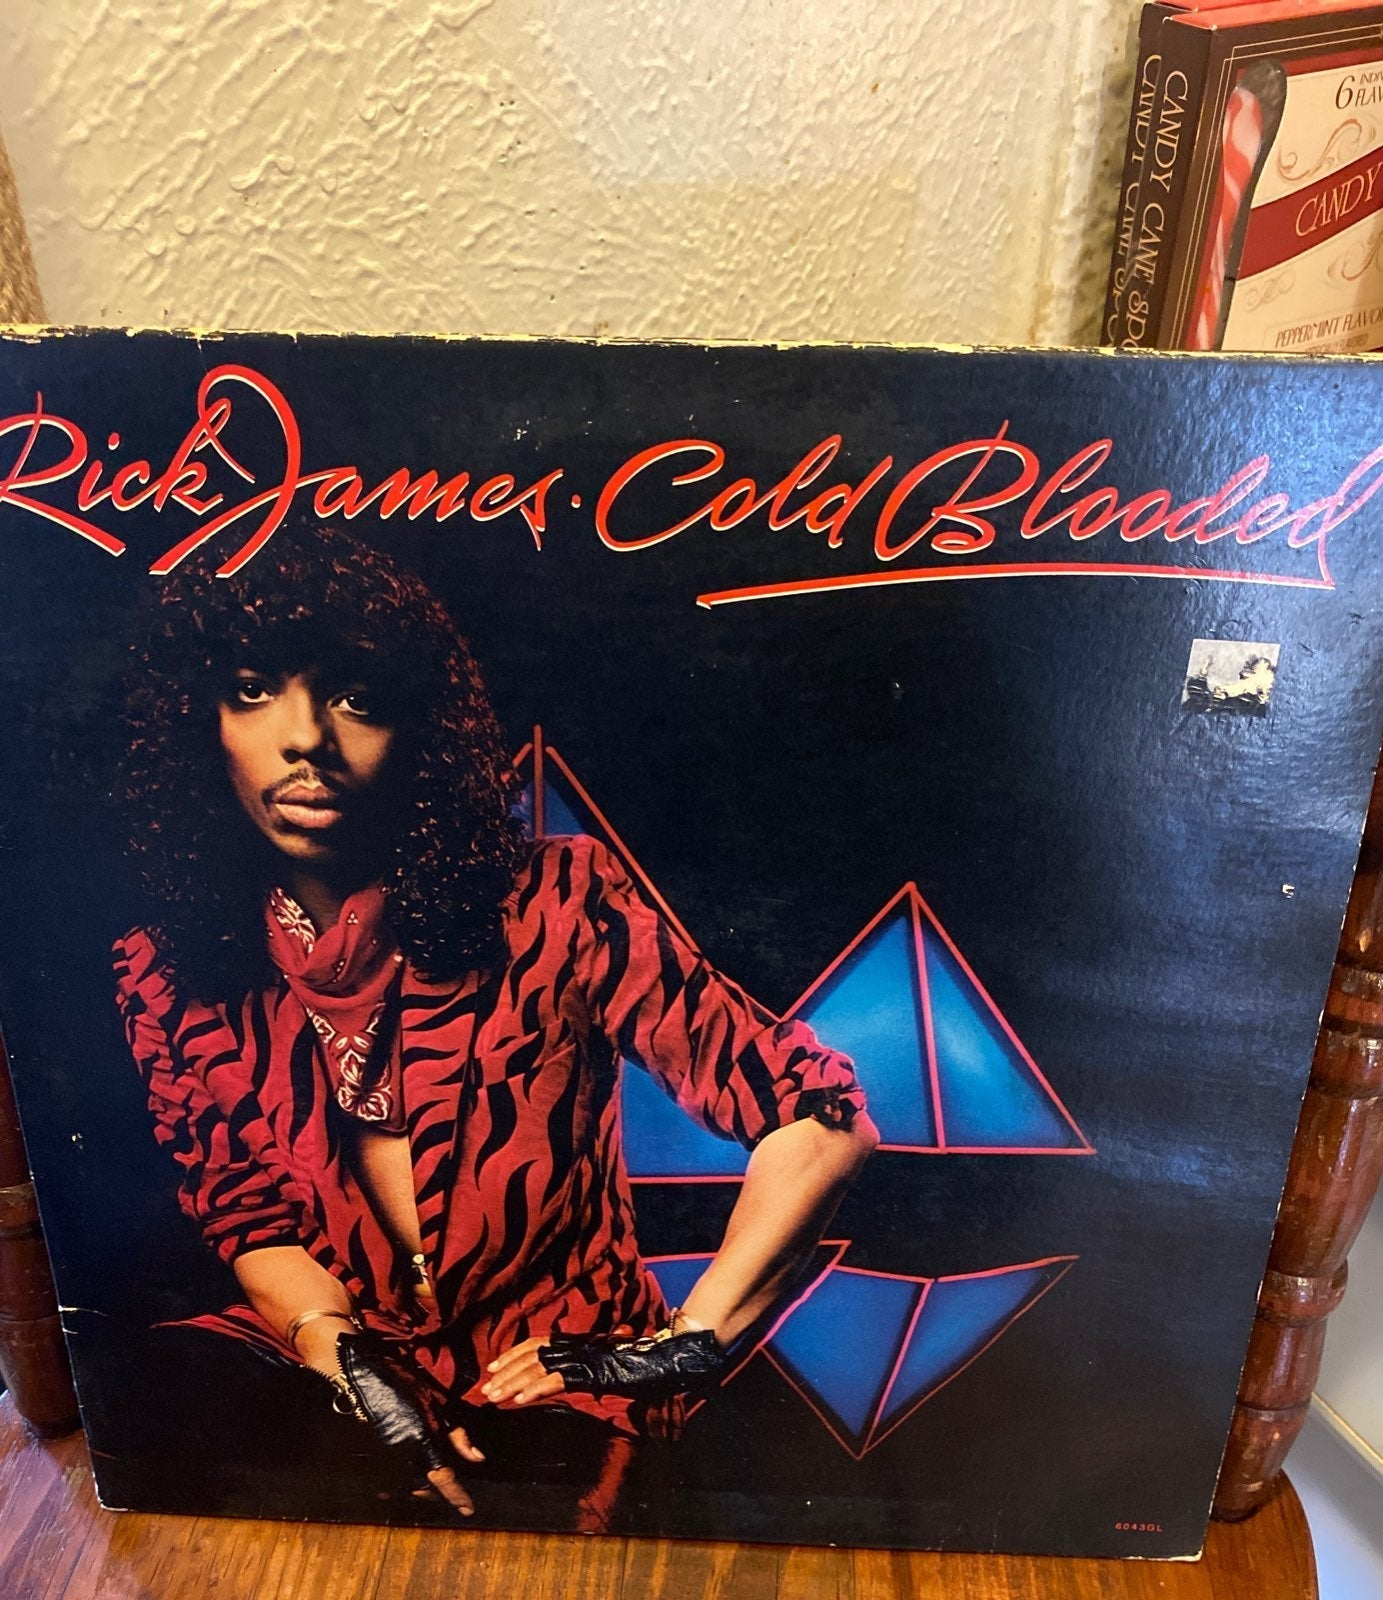 Cold Blooded by Rick James (Vinyl, Motow